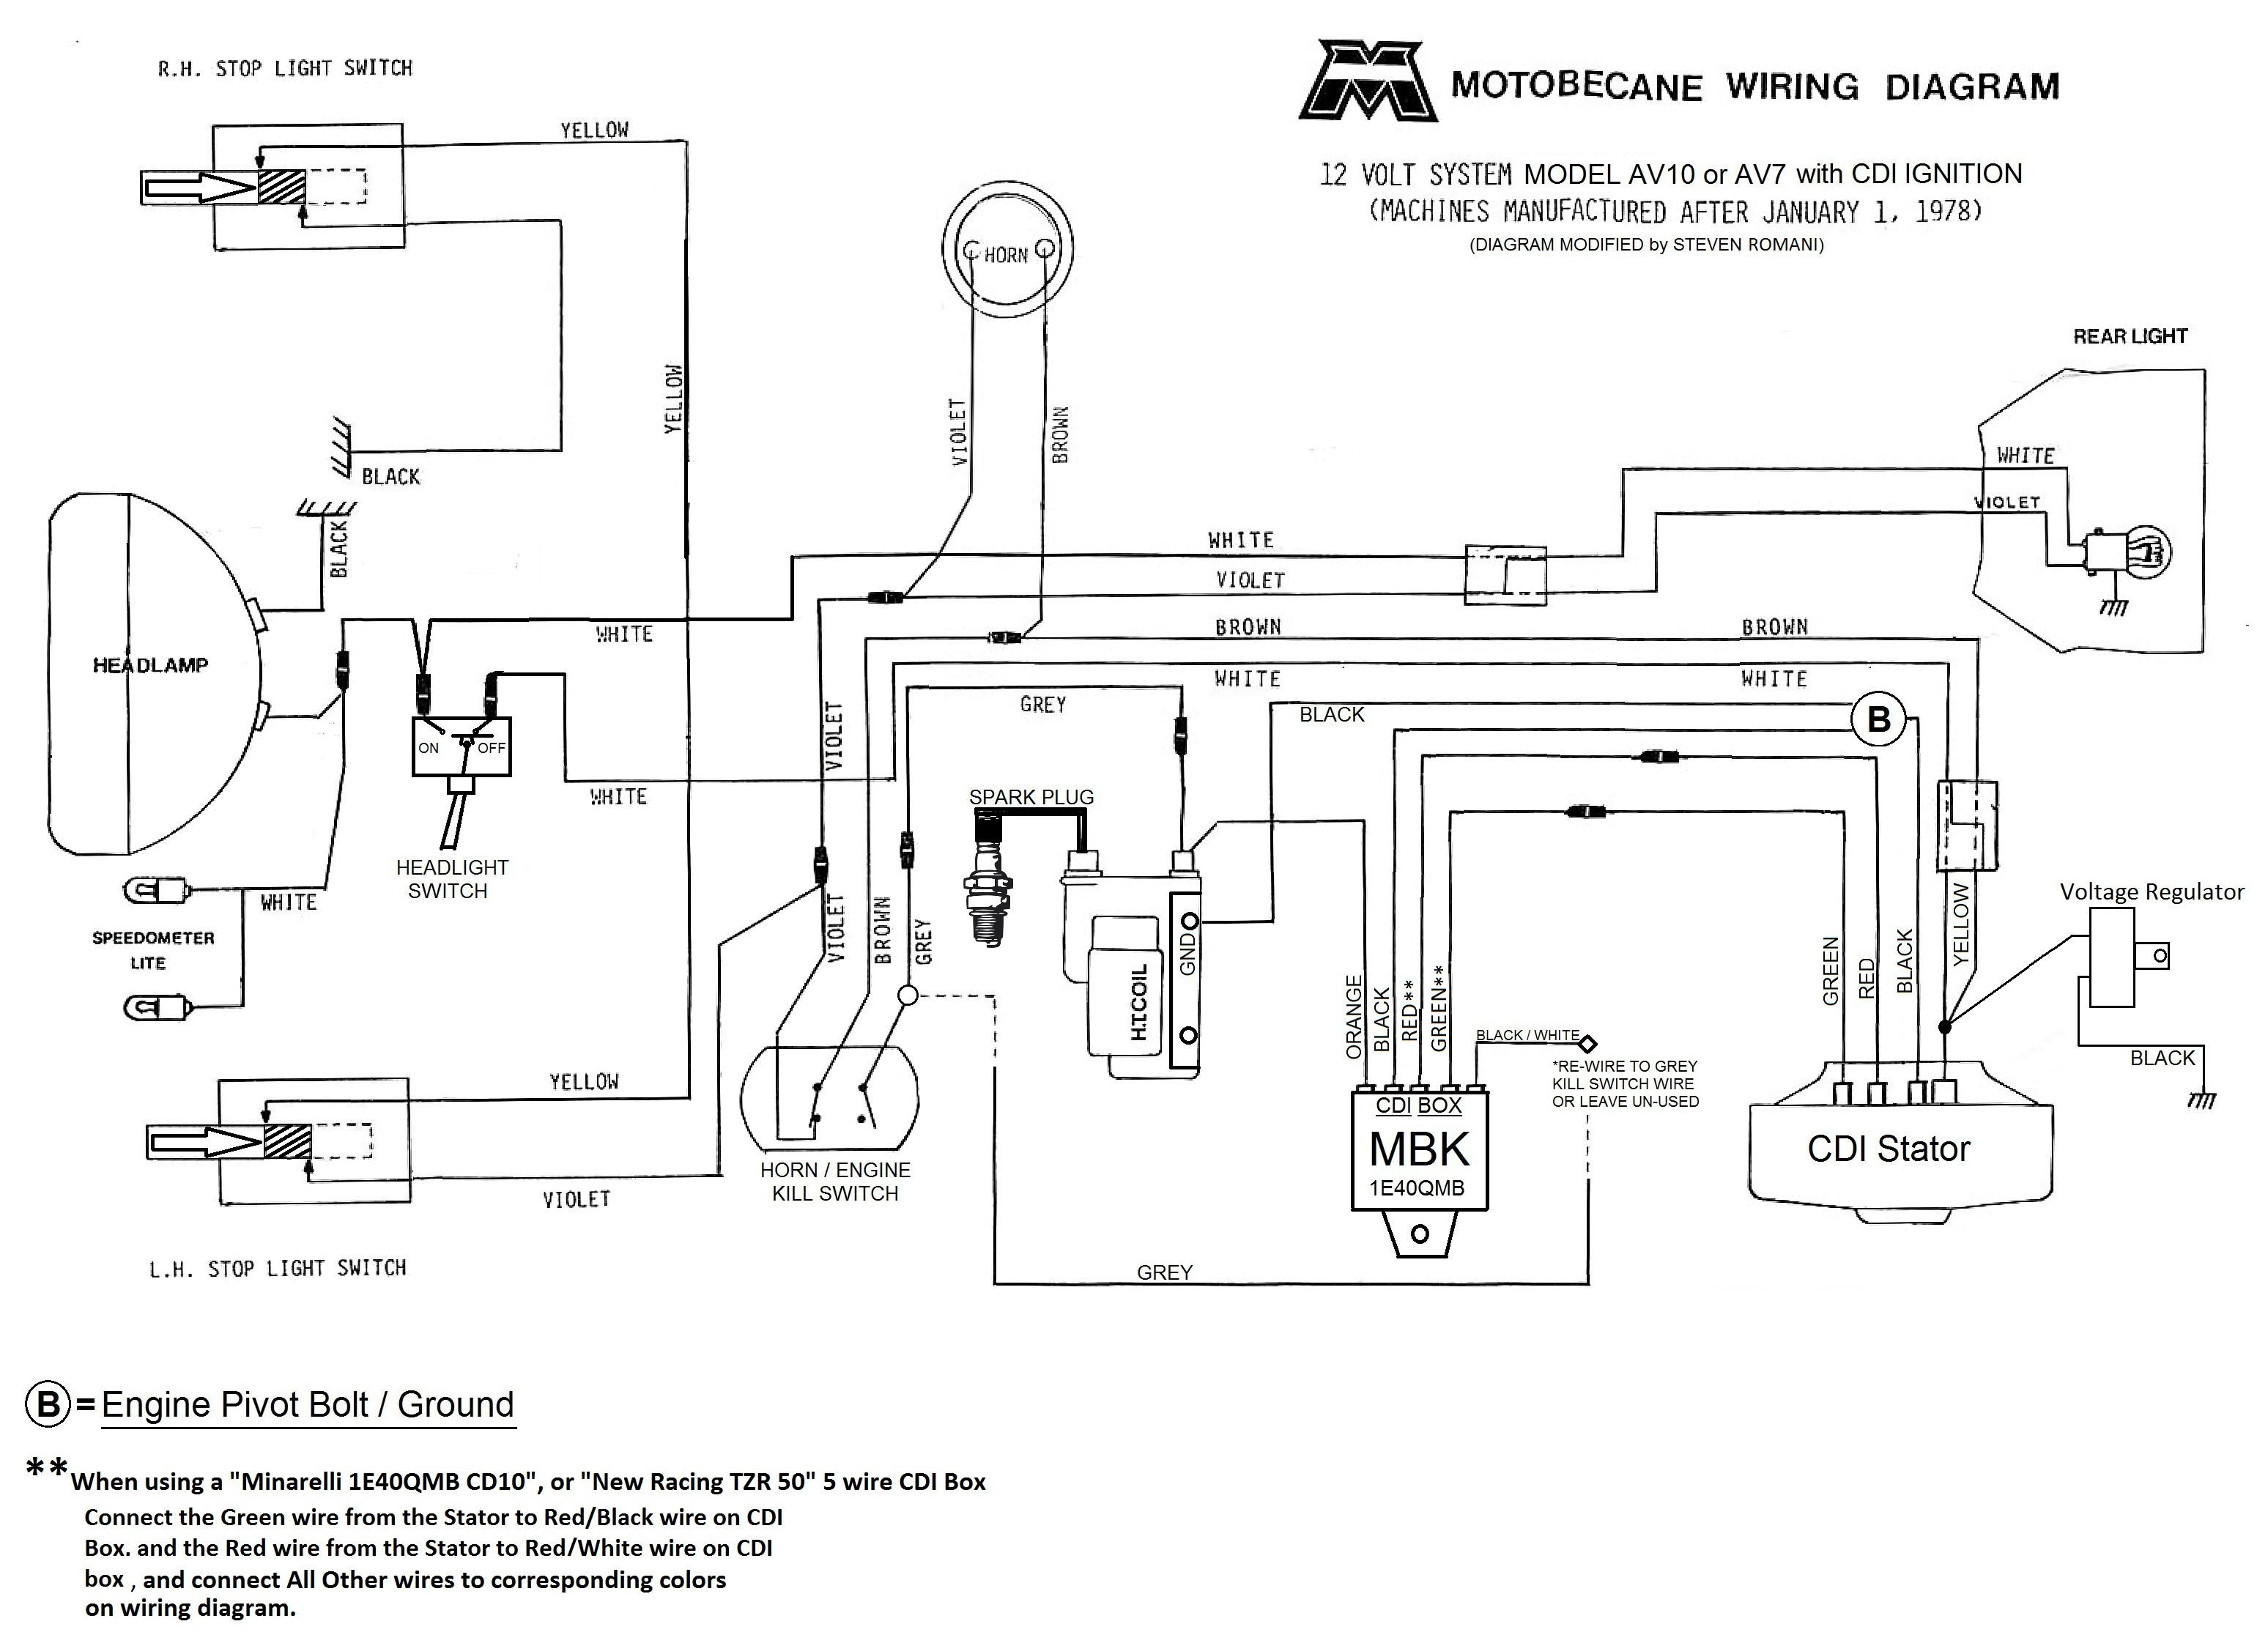 Motobecane 12v CDI wiring diagram AV10 and AV7.jpg